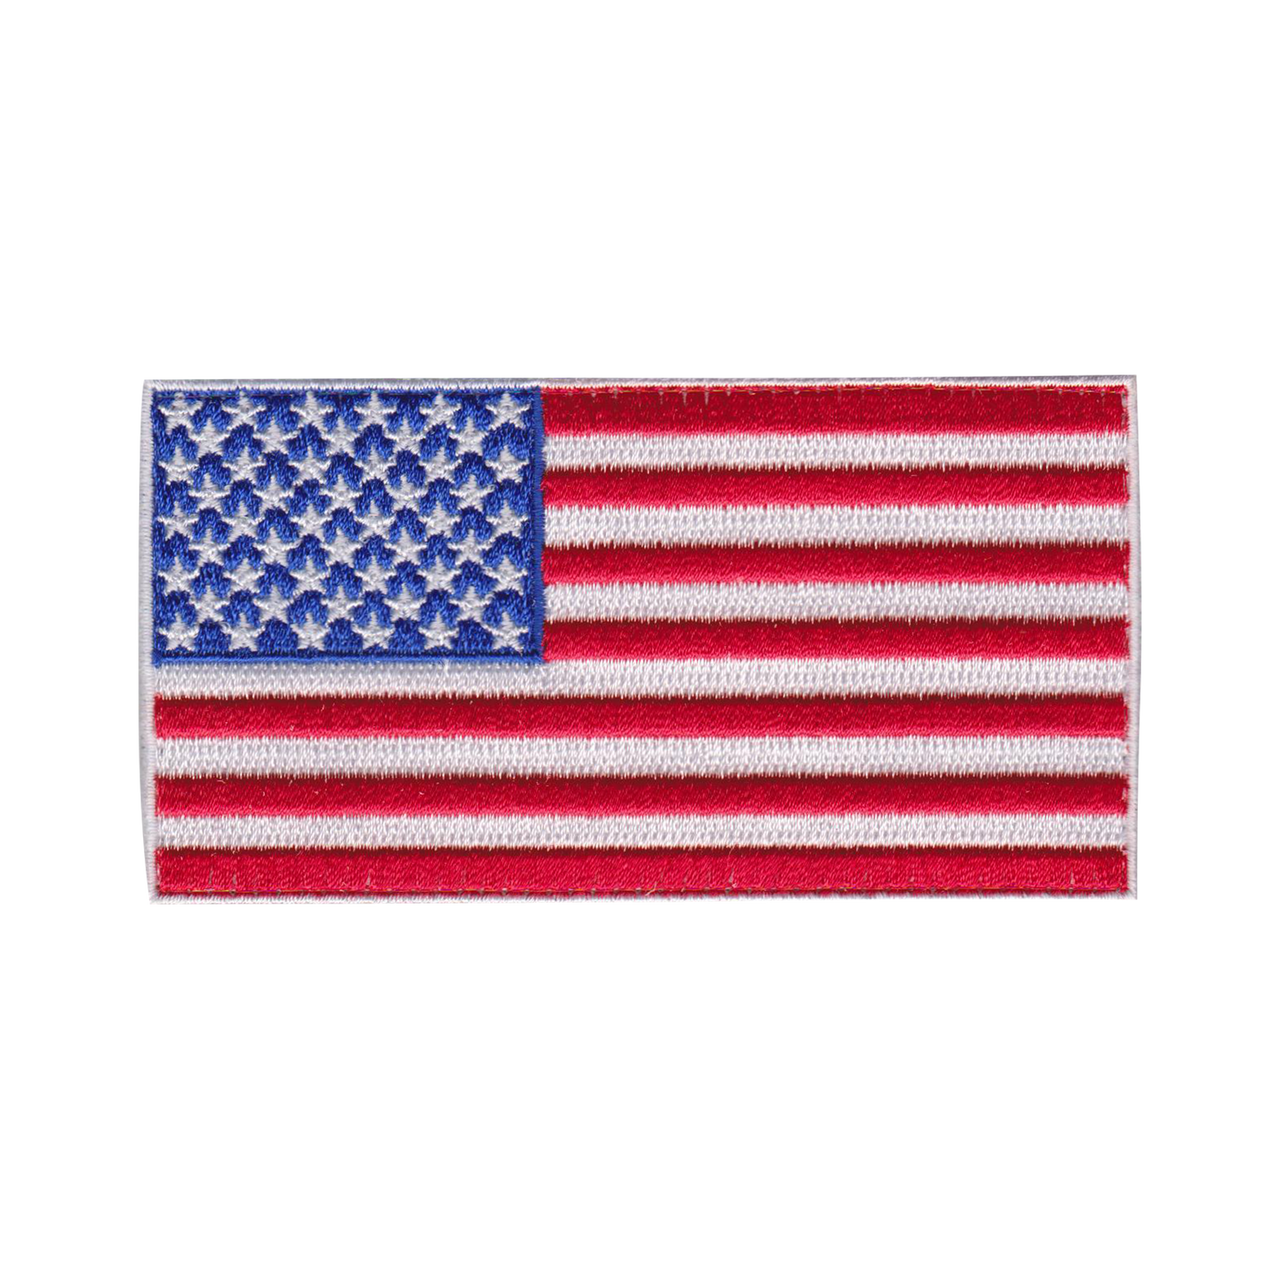 USA Flag Patch - Marucci Sports 398a6aed91a